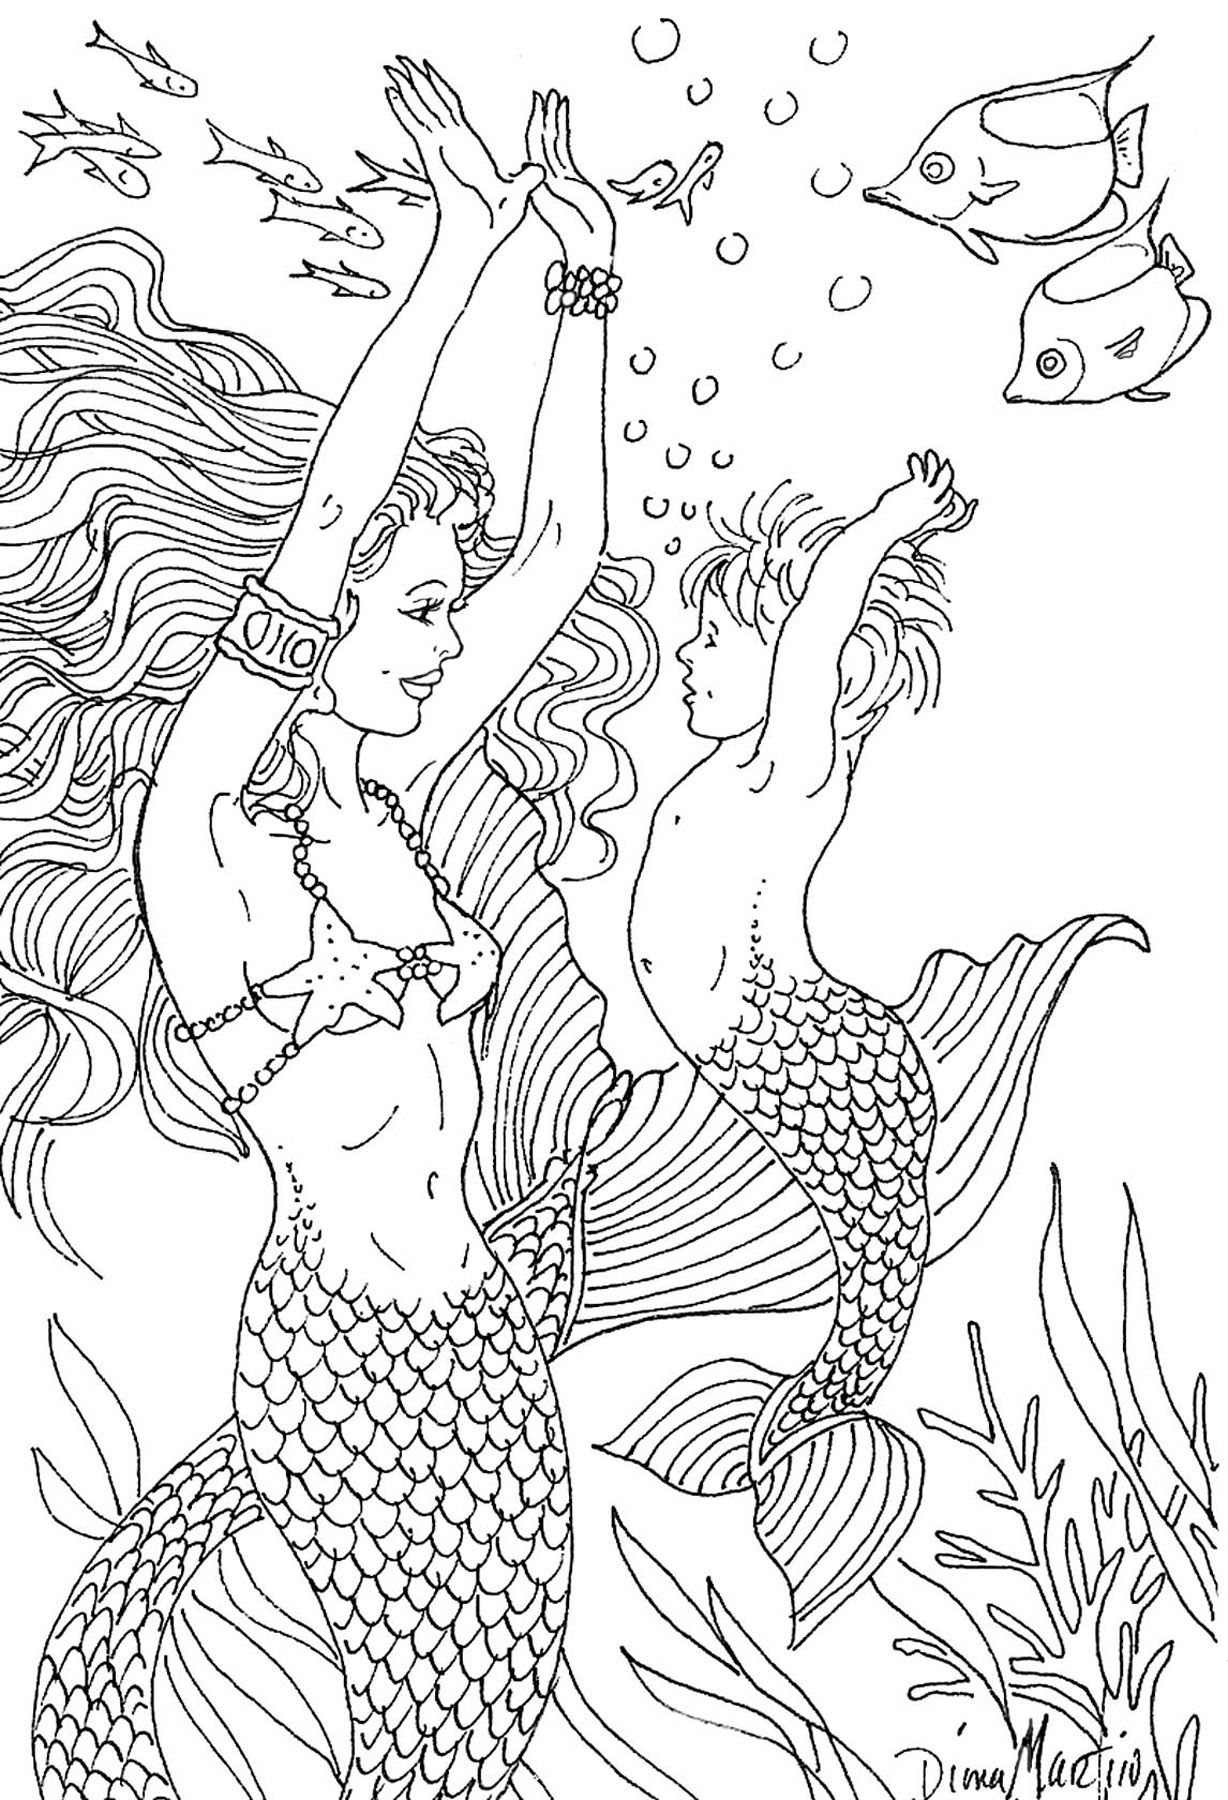 learning how to swim entire coloring book of  images is